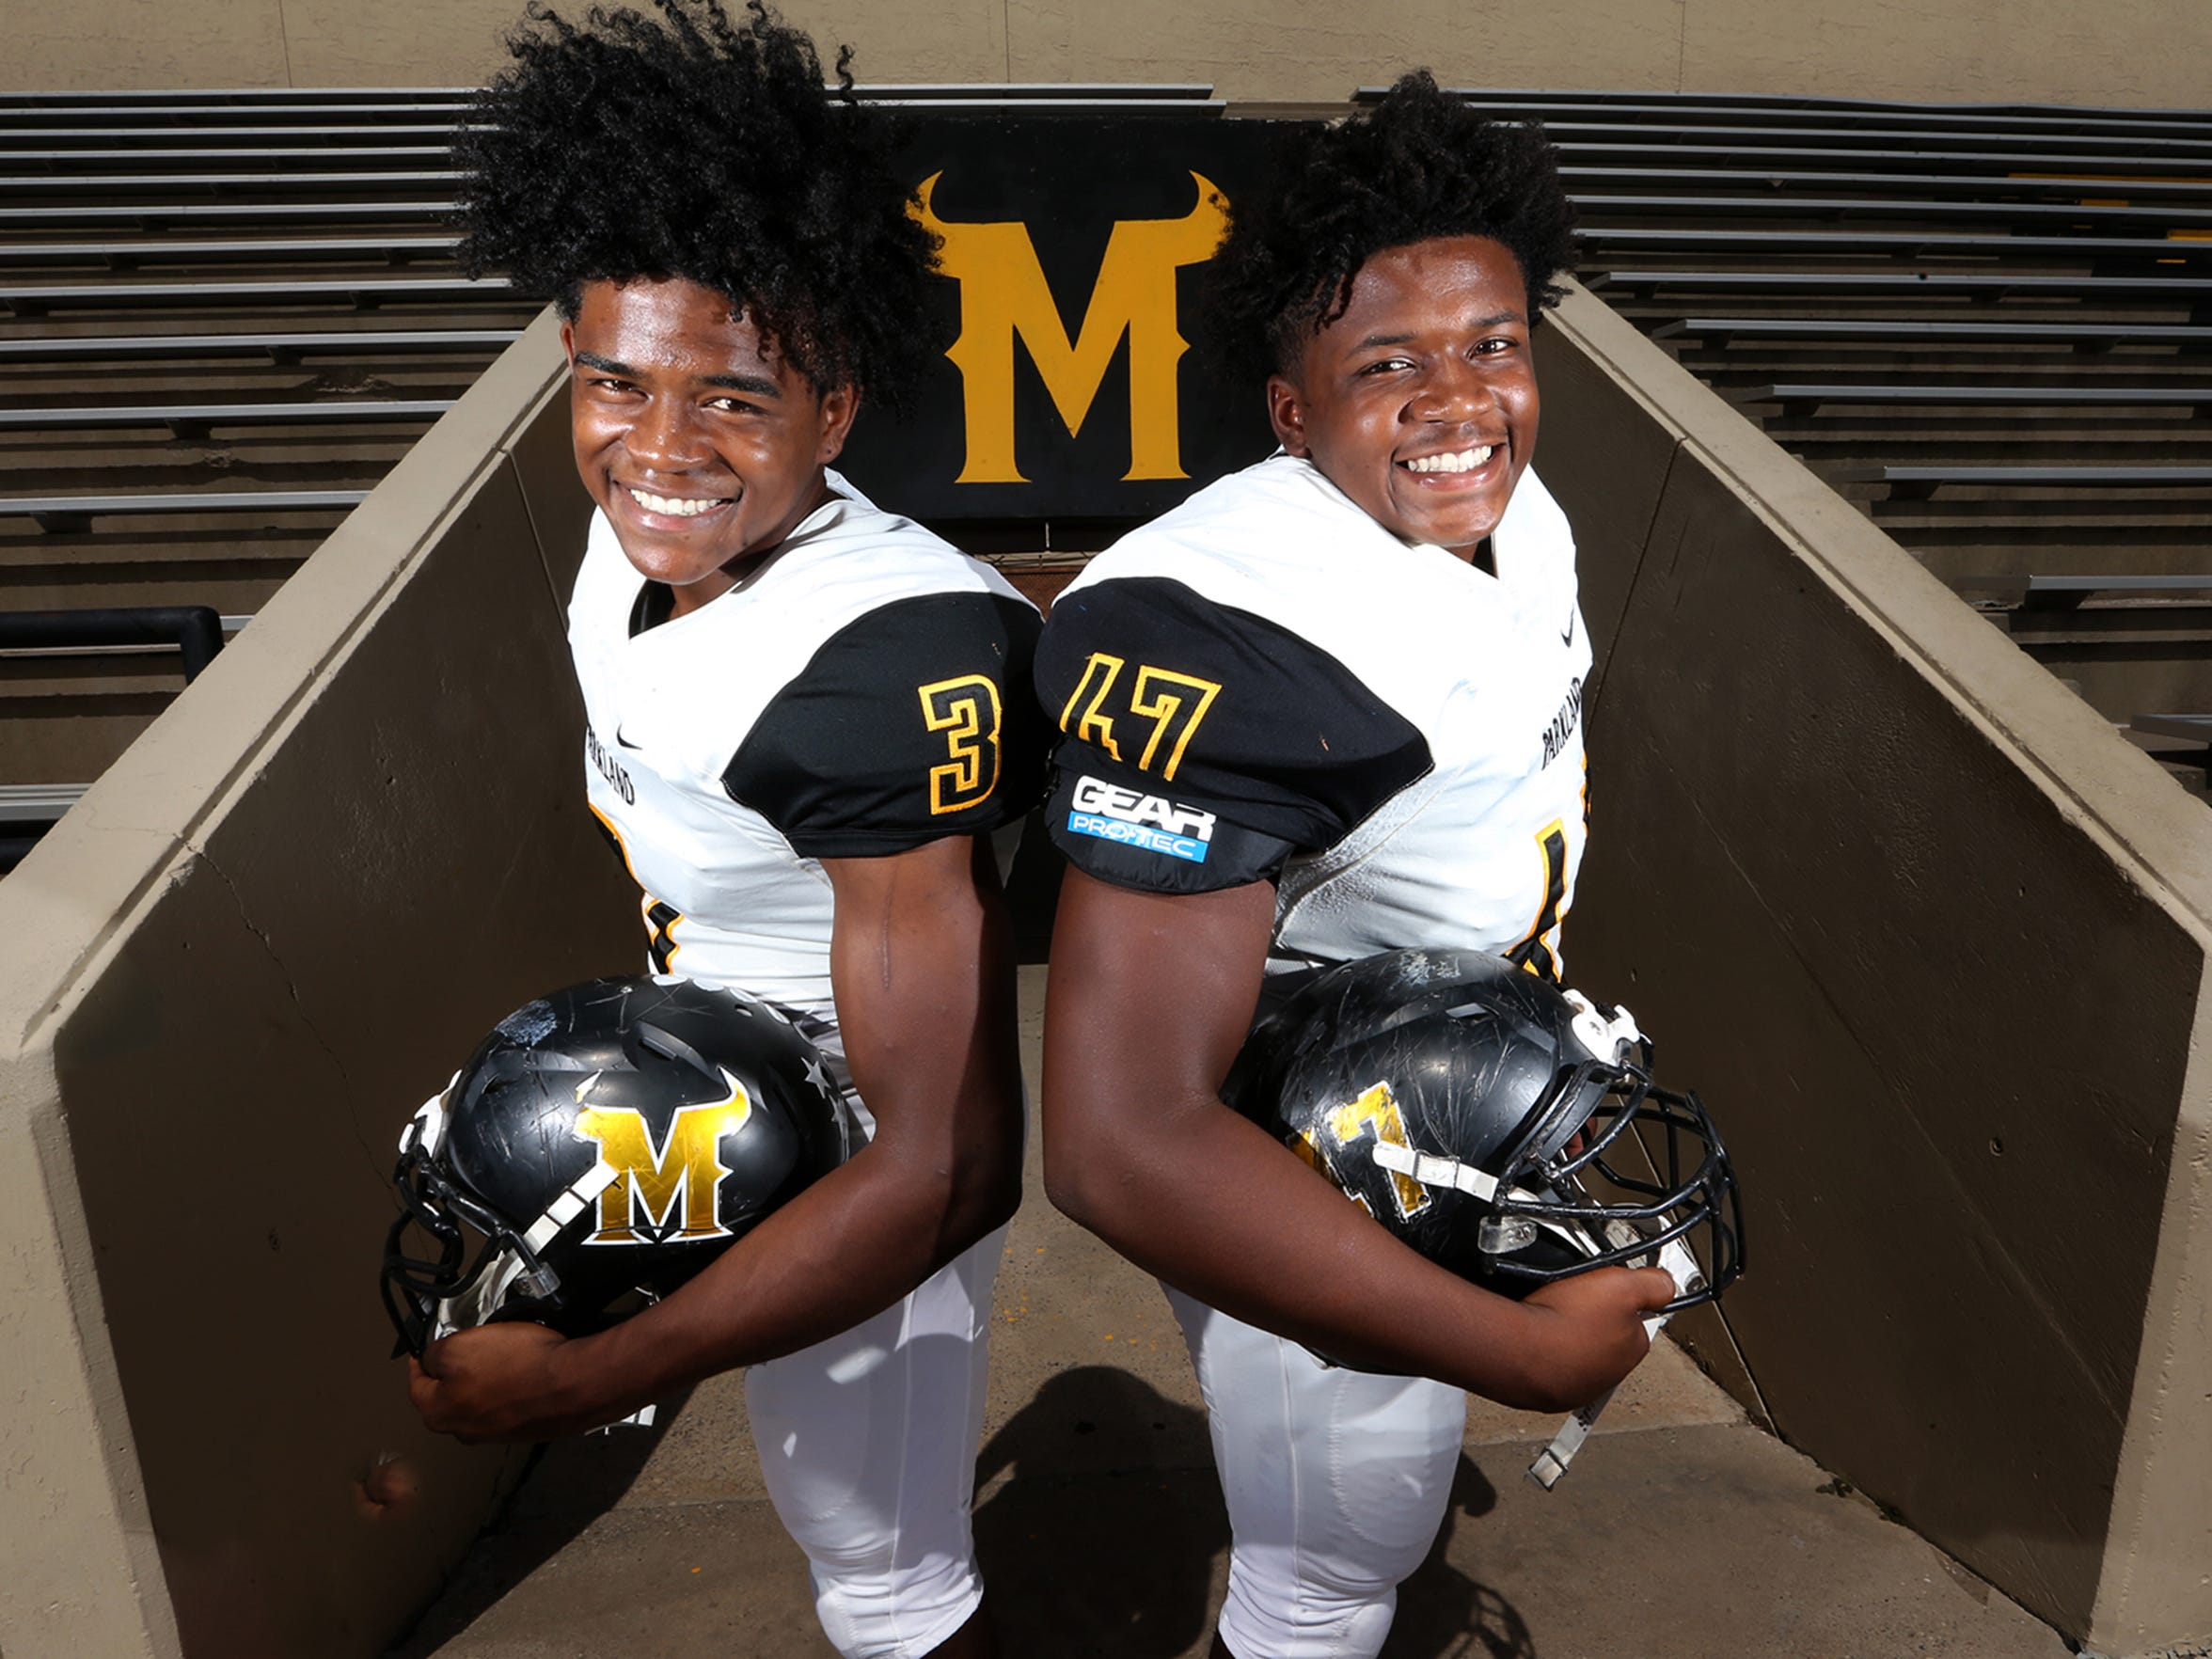 Brothers Deion, left, and Devontey Hankins of Parkland are gearing up for the a new season.